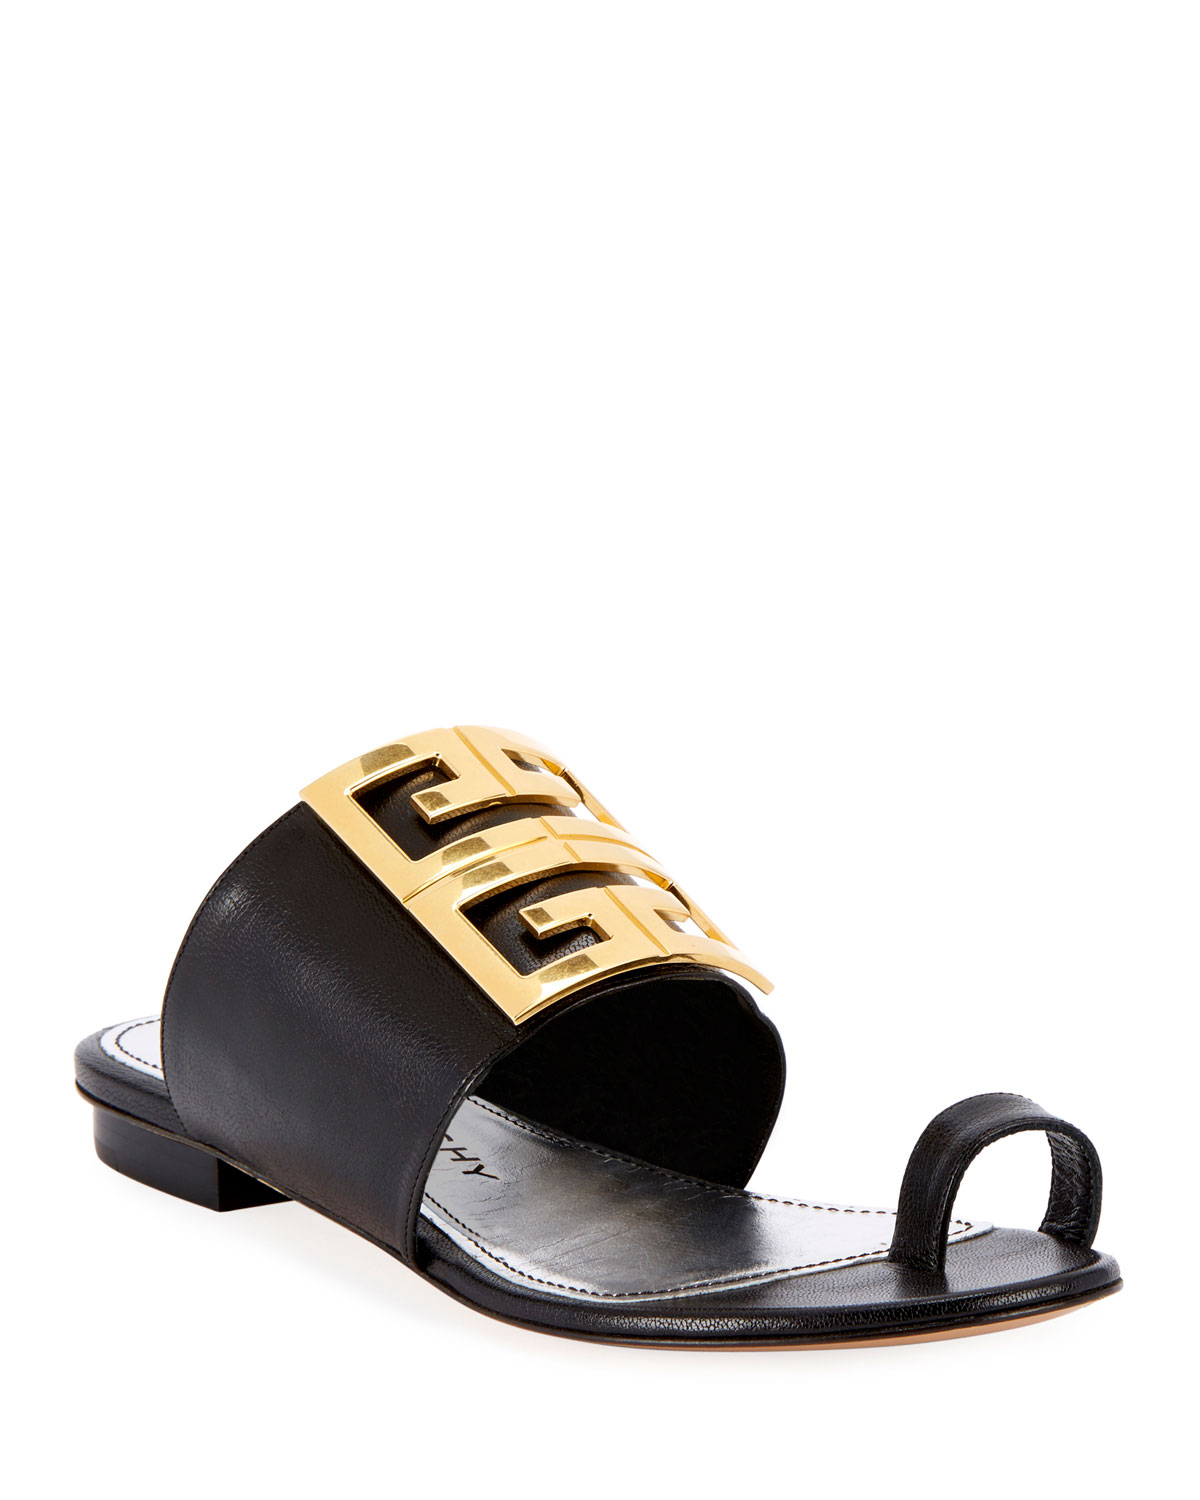 8ab70a663bd Givenchy Flat Leather 4G Logo Slide Sandals